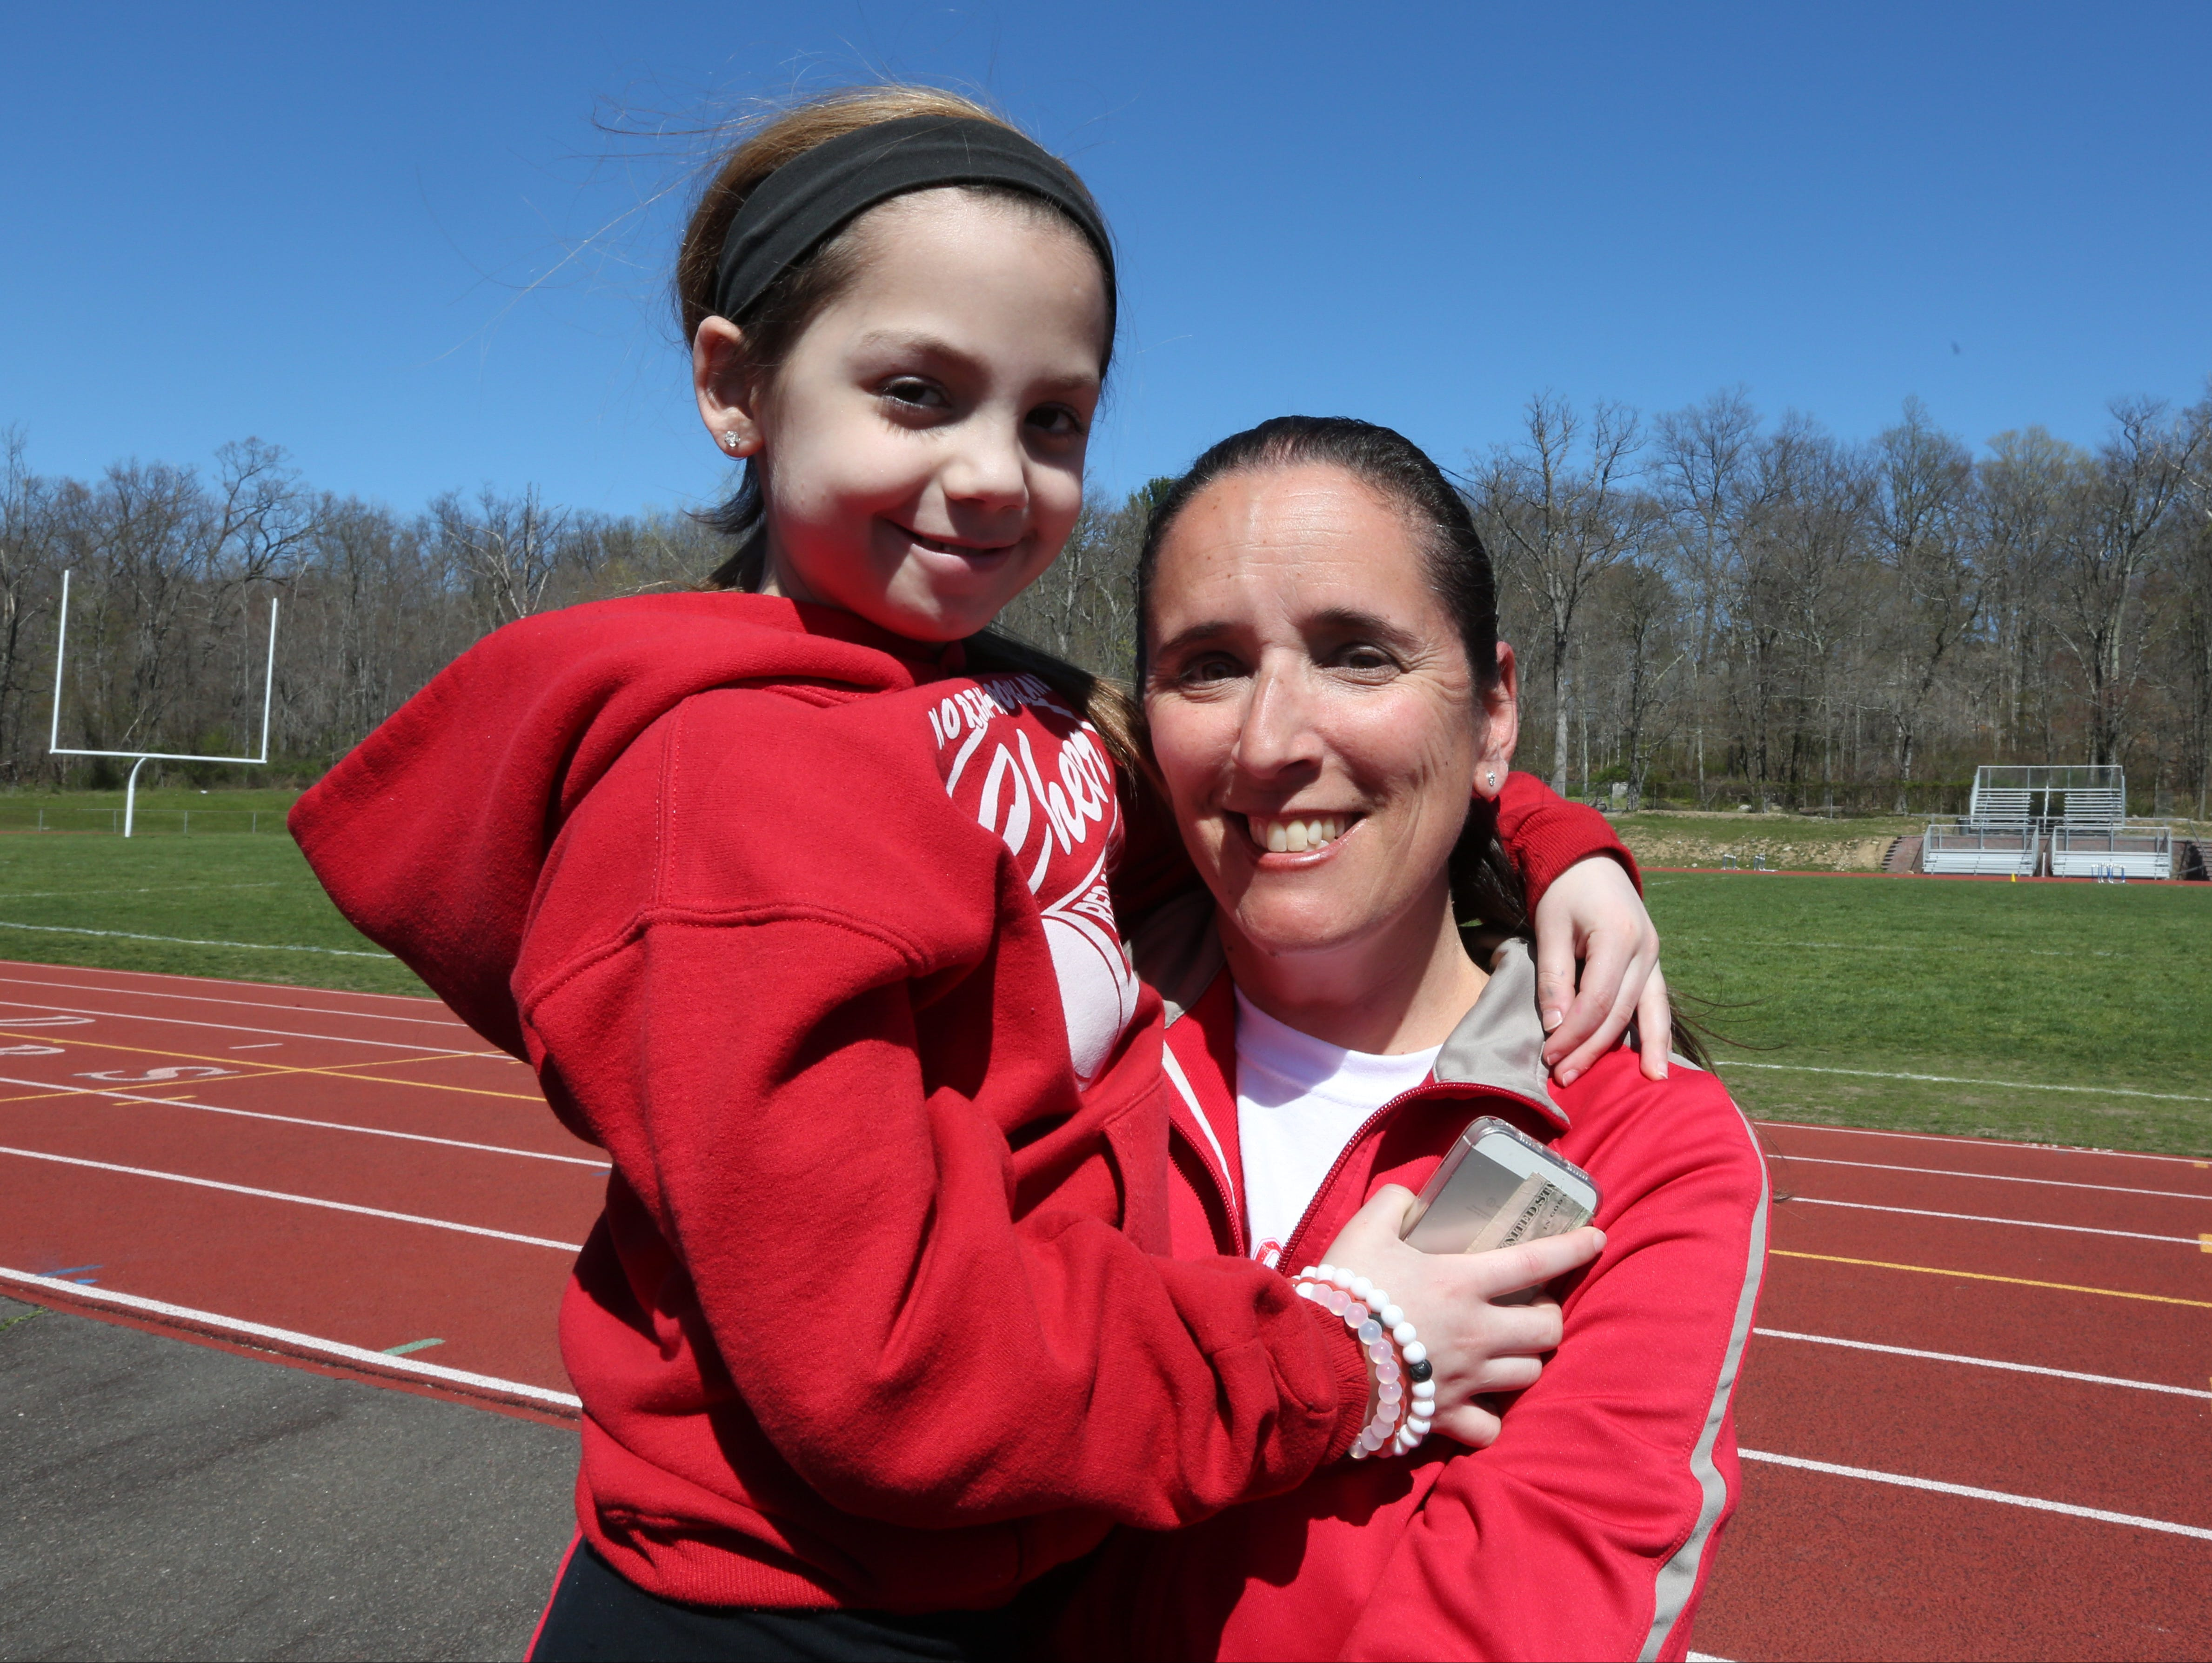 """Stony Point Elementary third-grader Gabby DiCarlo and Jennifer LaBier, Stony Point Elementary teacher and high school tennis coach, at North Rockland High School April 20, 2016. They got together to spread the word about the second annual """"Sports Day"""" at the high school on April 30. So far the program has raised $14,000 for cancer and cystic fibrosis."""